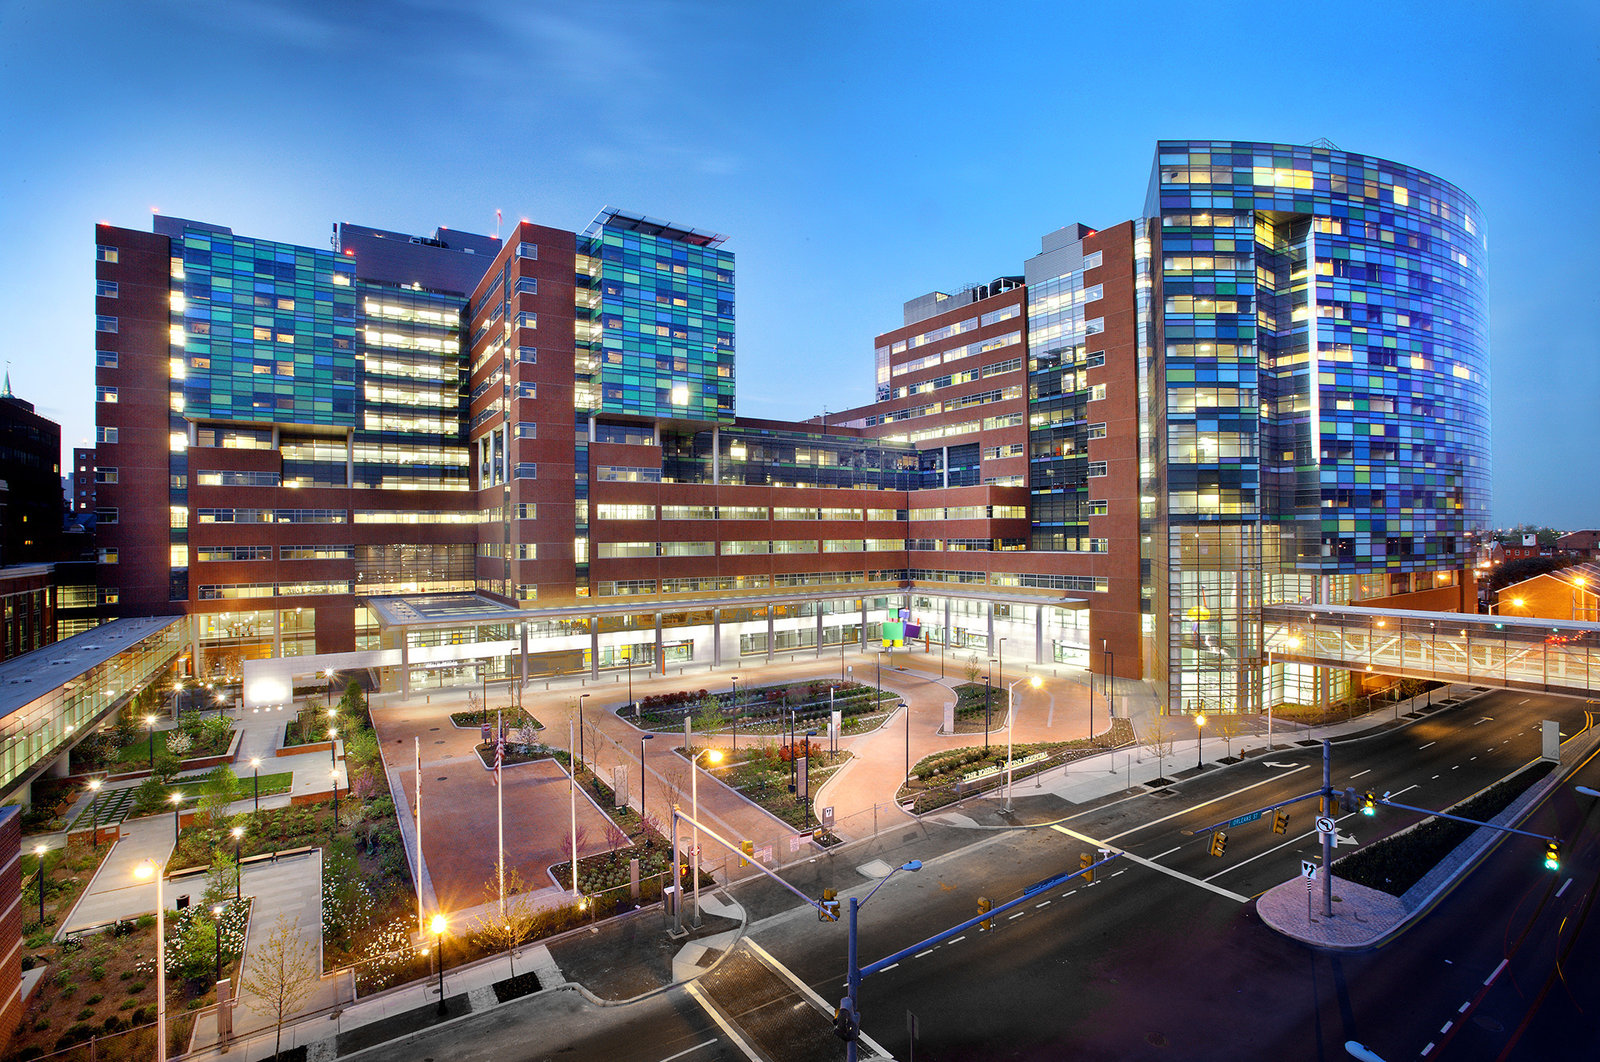 When Johns Hopkins Medicine opened gleaming new clinical buildings, it created a natural experiment to gauge patient satisfaction.